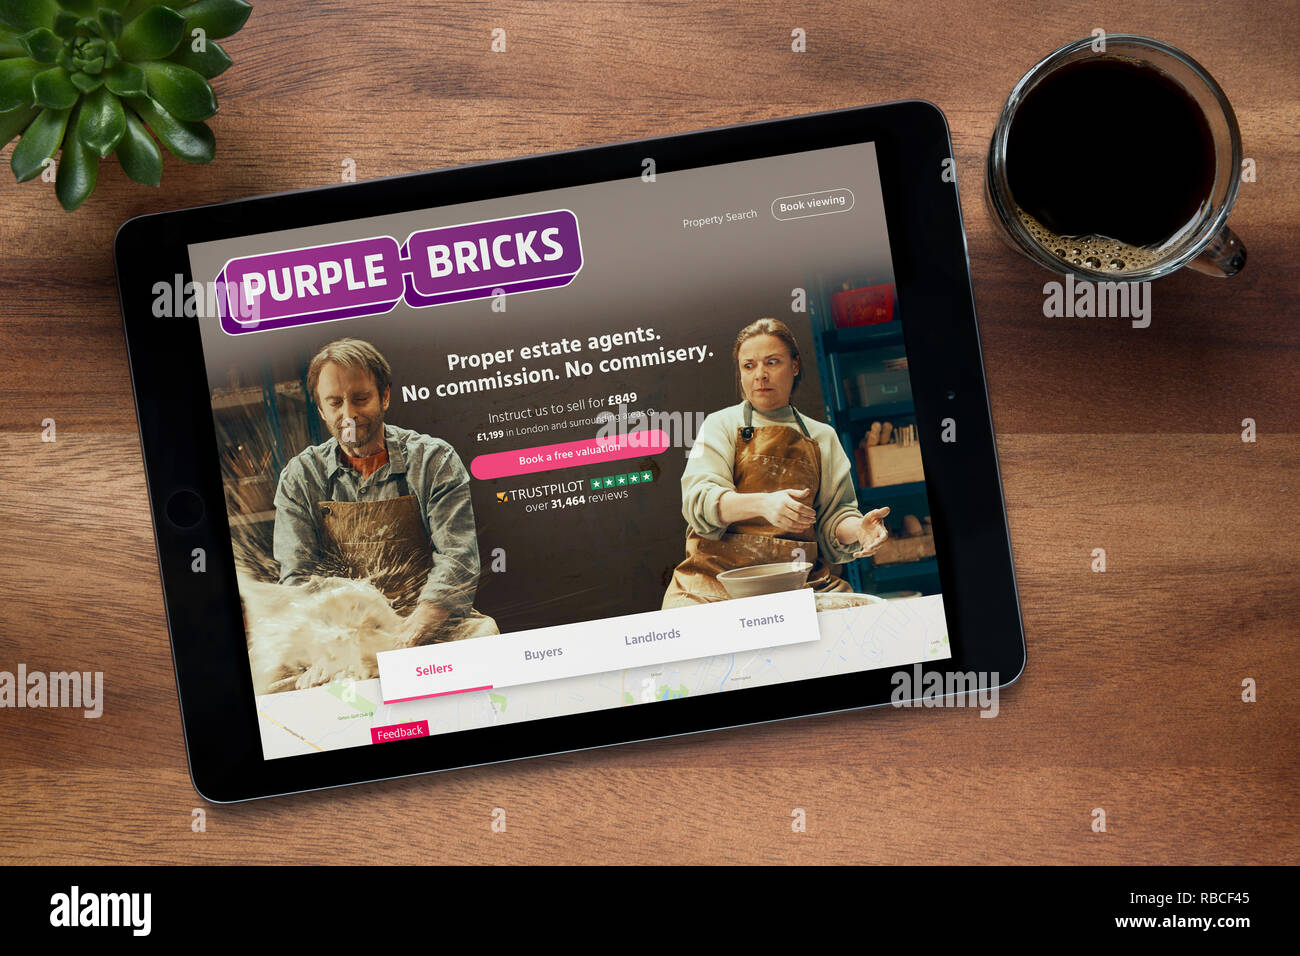 The website of Purple Bricks is seen on an iPad tablet, on a wooden table along with an espresso coffee and a house plant (Editorial use only). - Stock Image